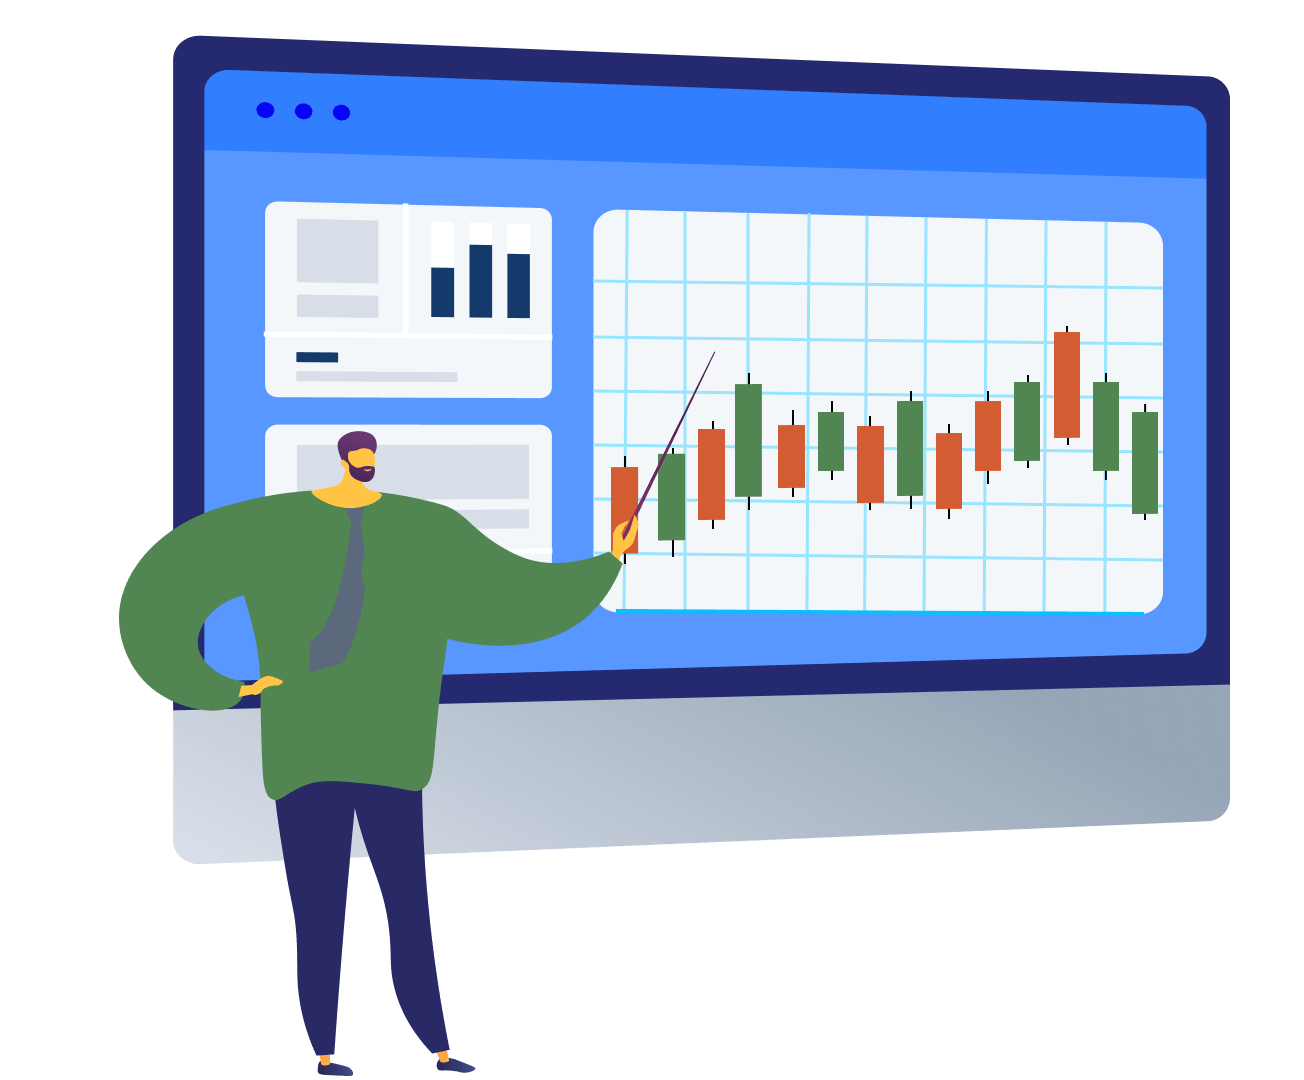 How to read candles in trading